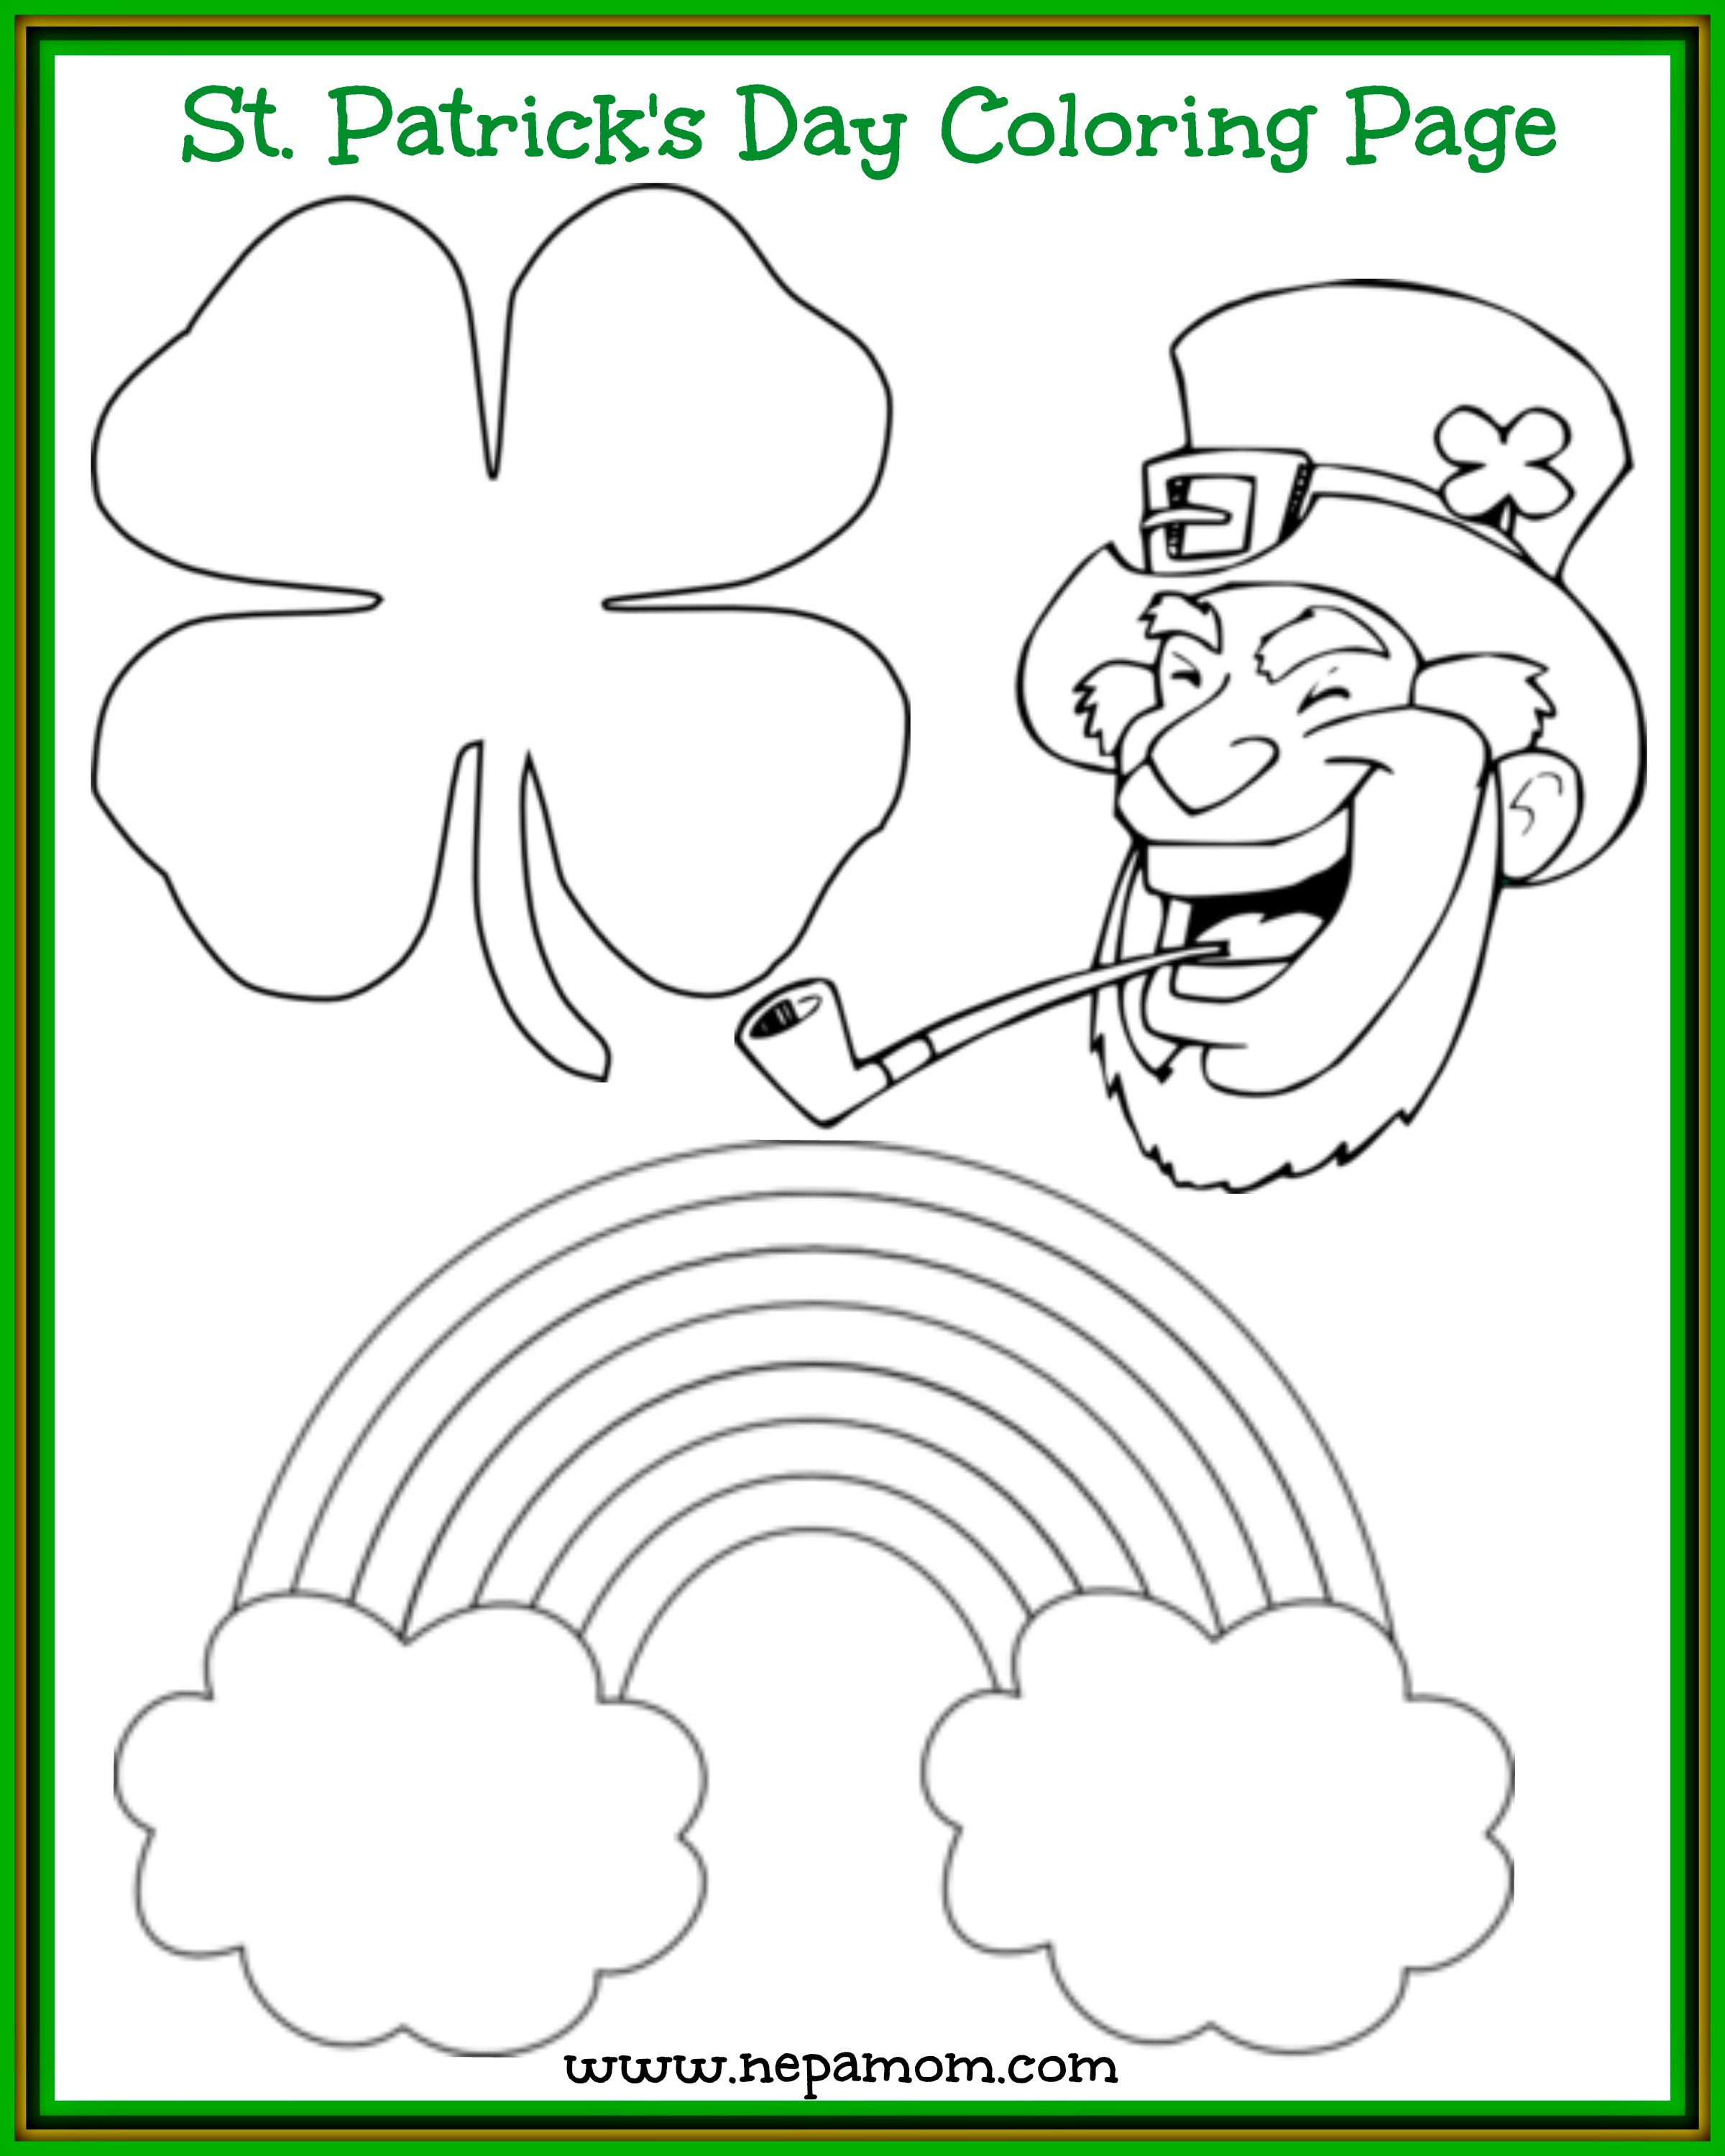 St Patrick\'s Day Coloring Page - NEPA Mom